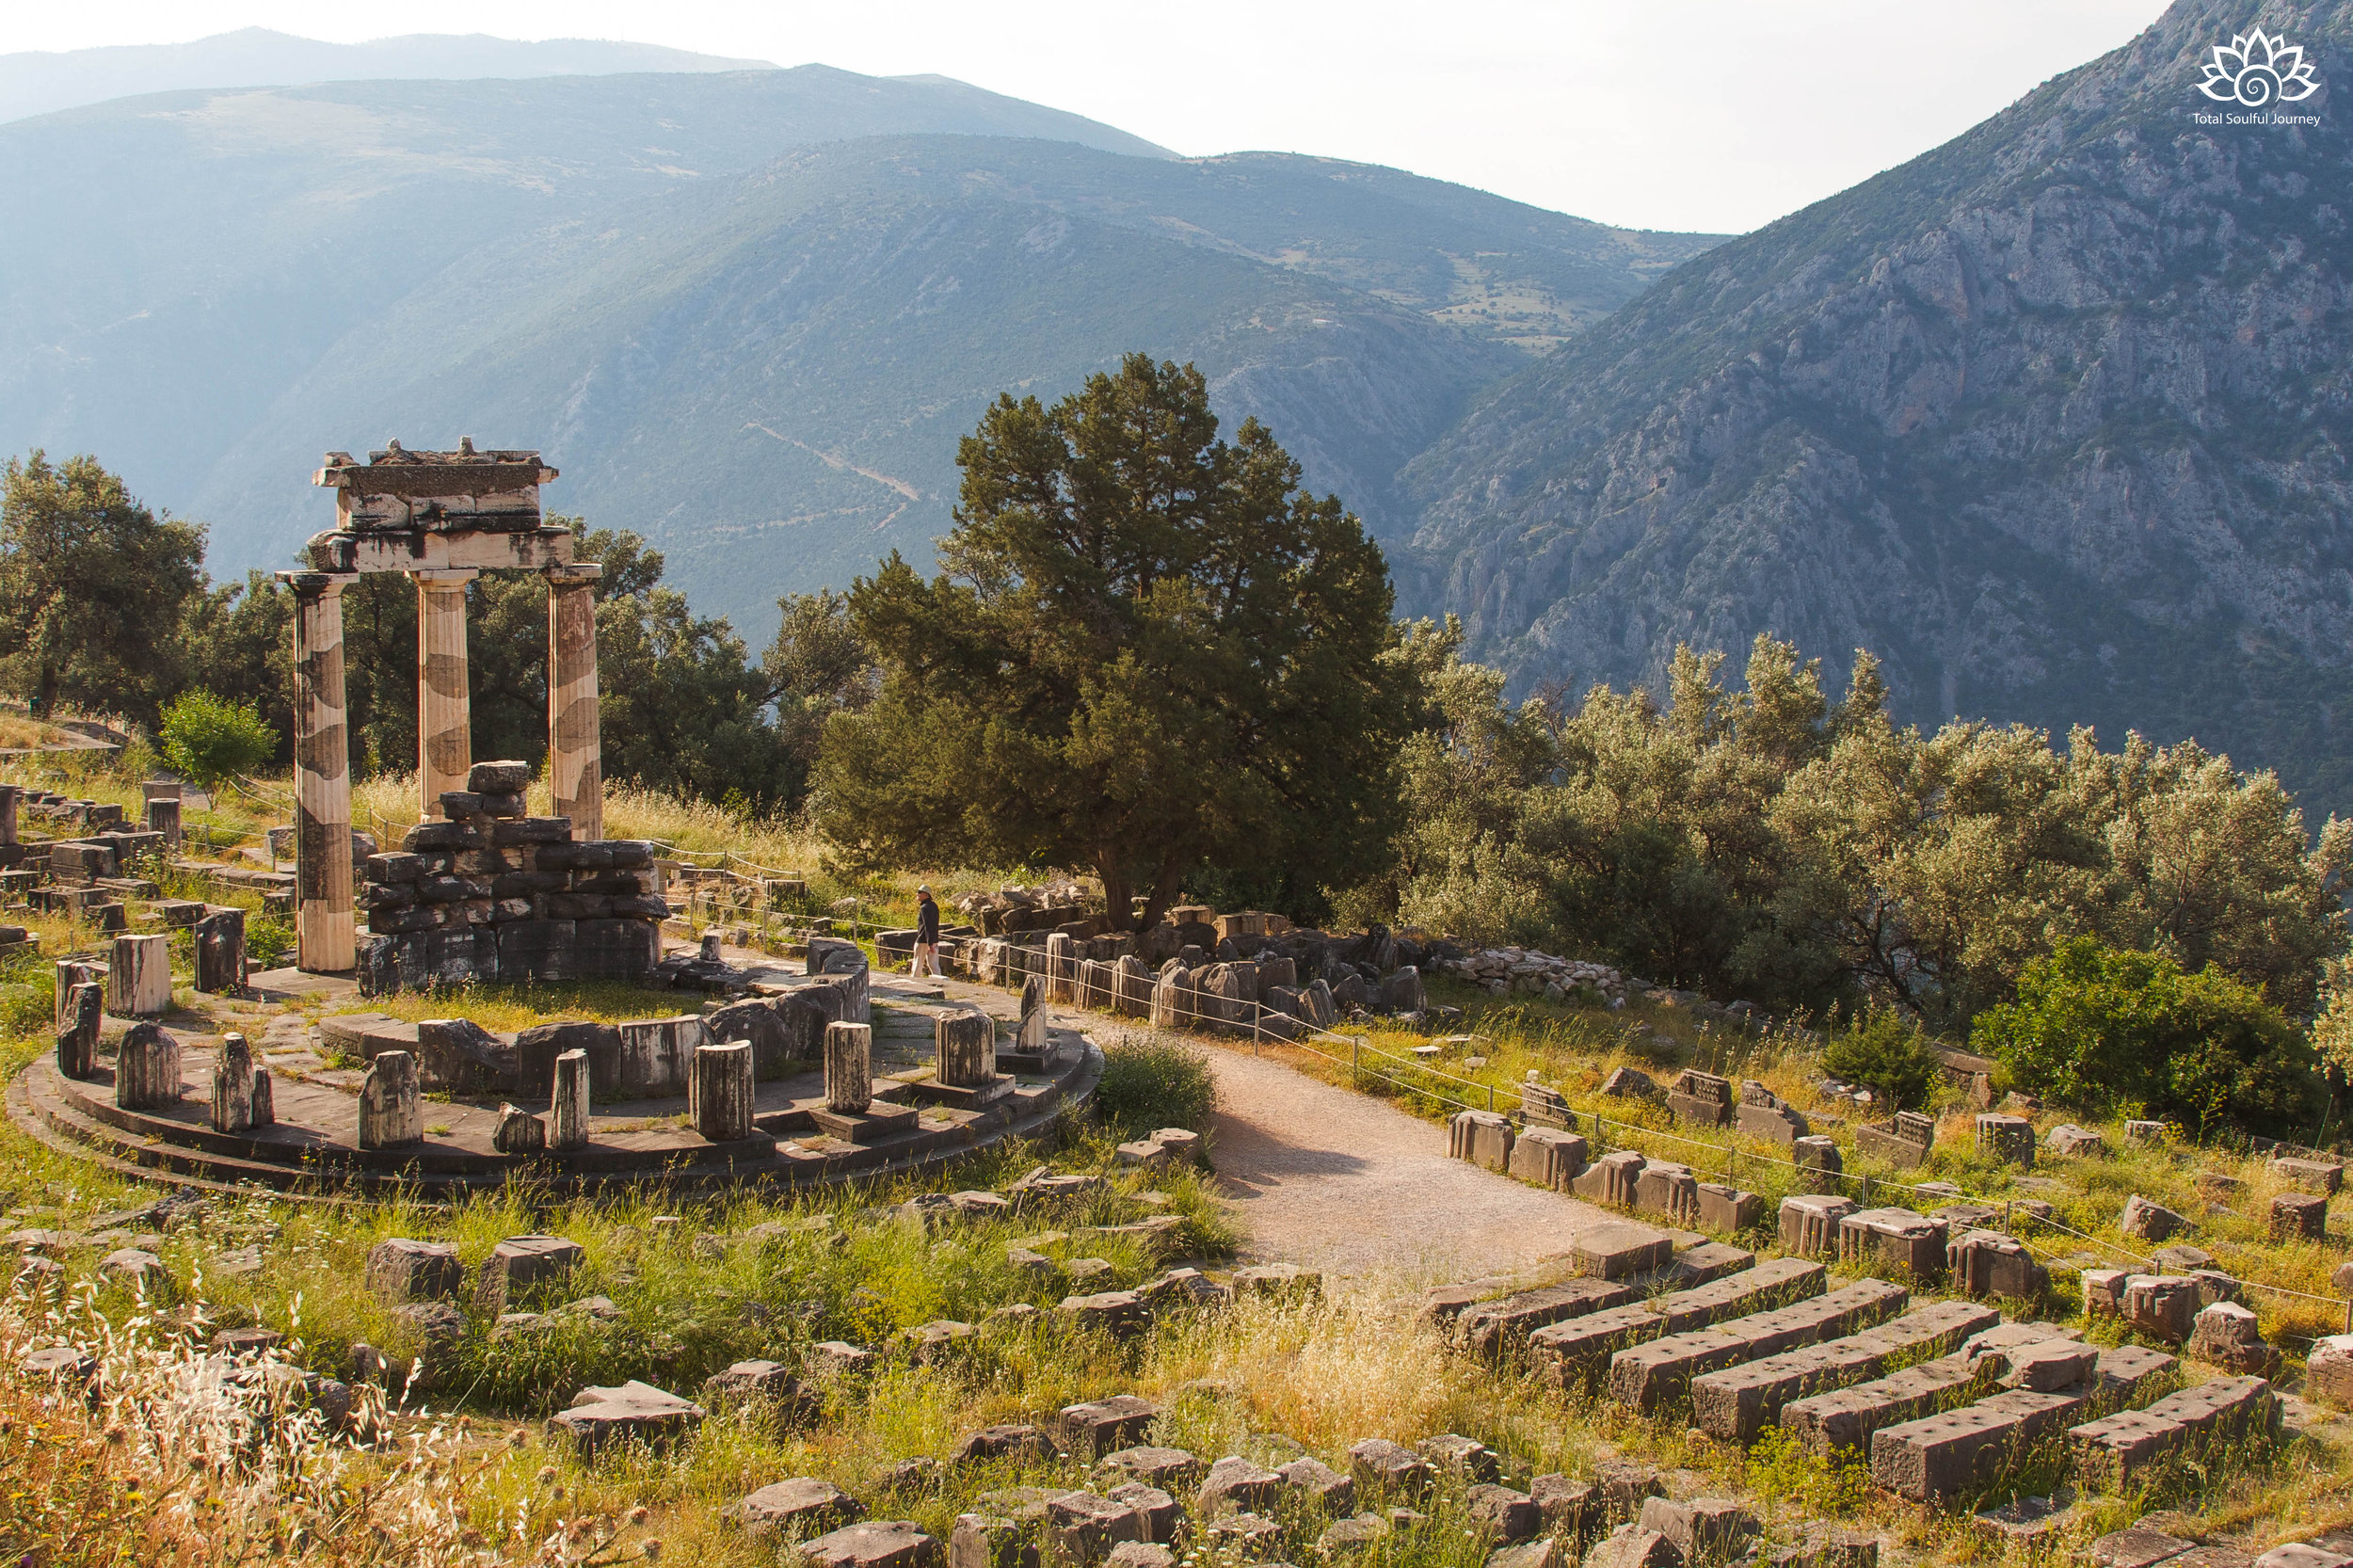 The remains of the sanctuary of Athena in Delphi,Greece. Photo by Paul Garrett